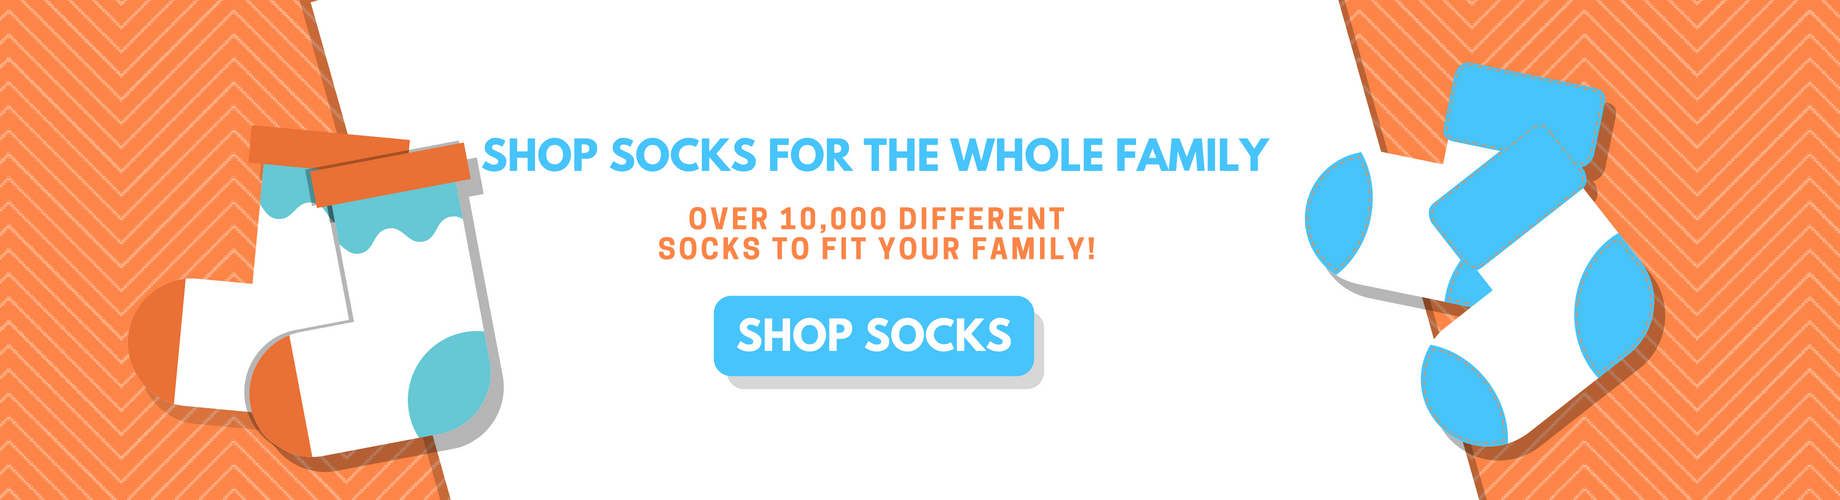 Wholesale Socks and bulk socks for the family